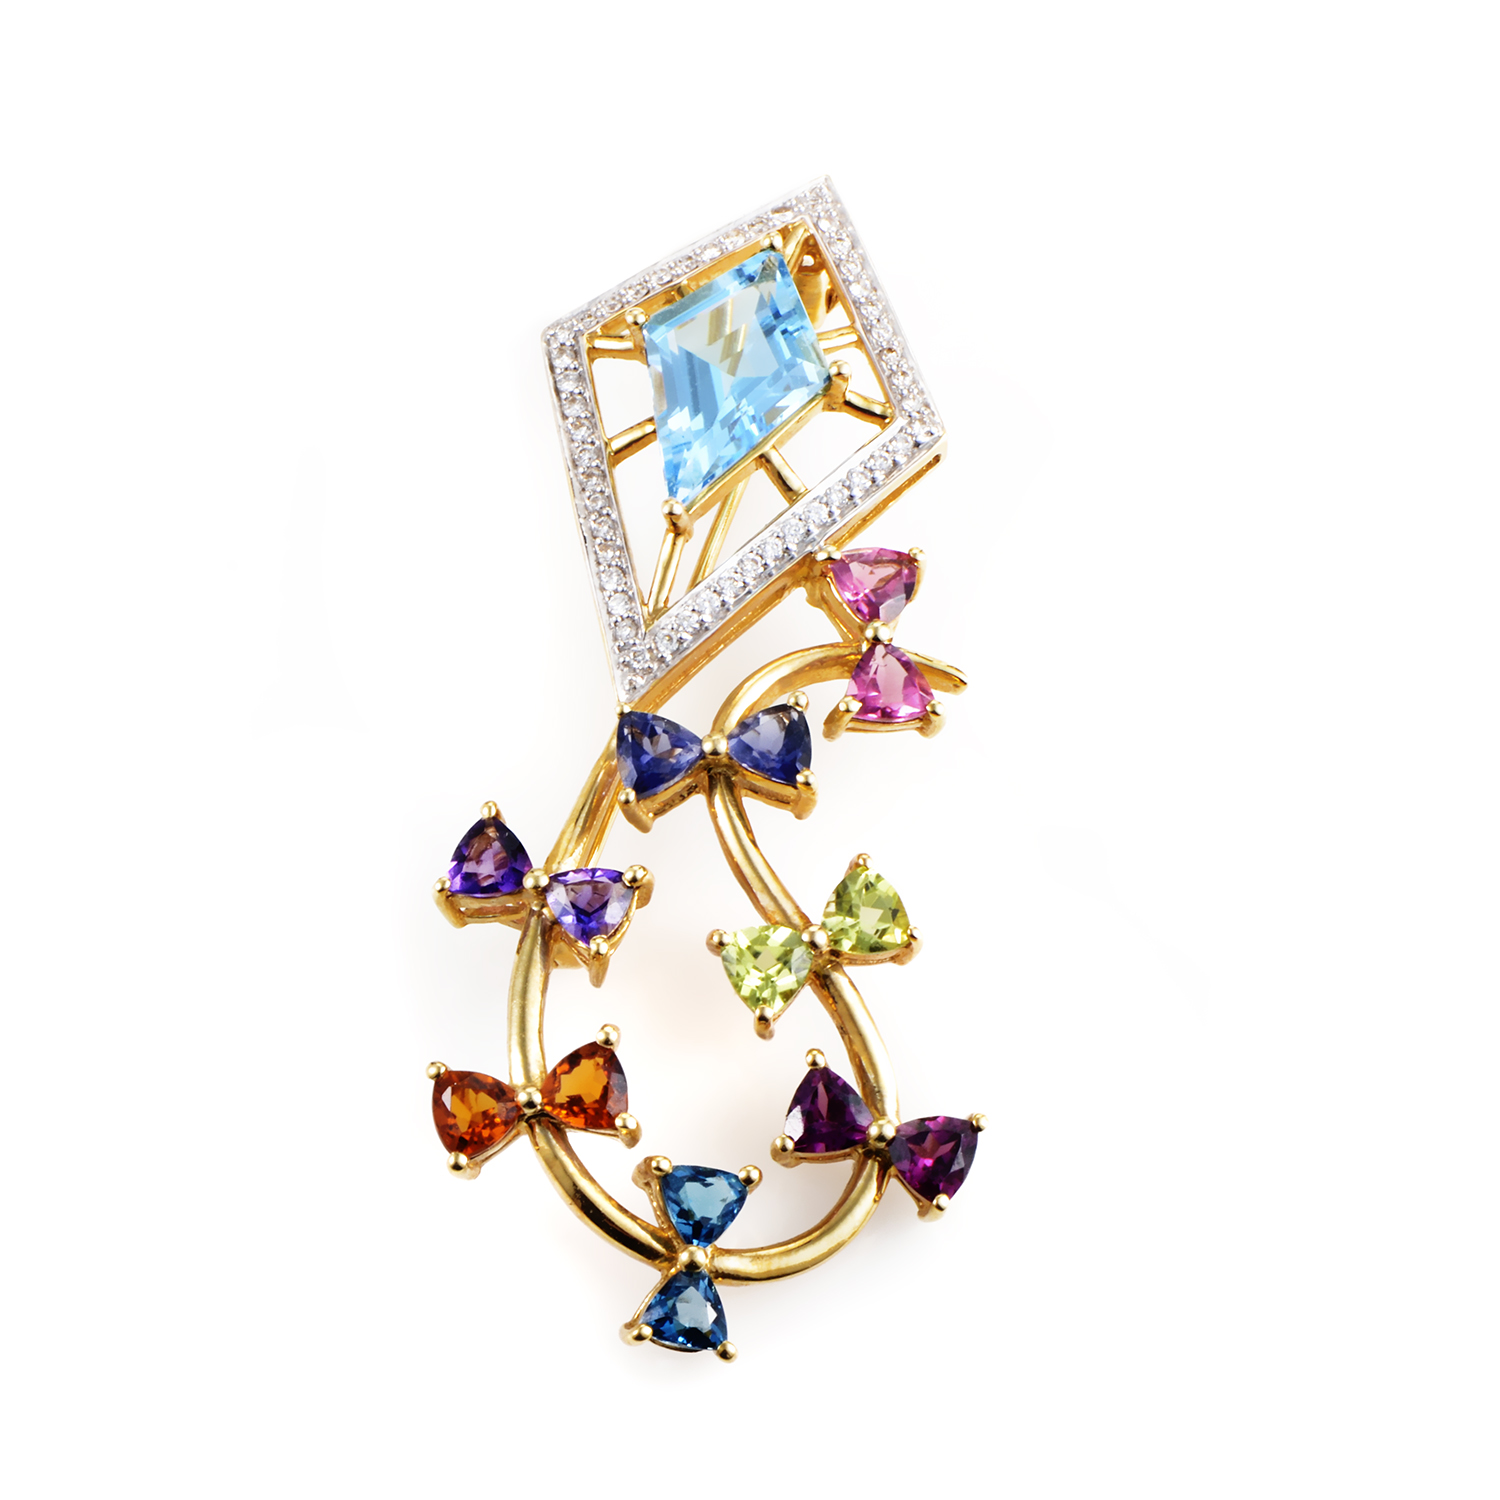 18K Yellow Gold Multi-Gemstone & Diamond Kite Brooch C-33-021016